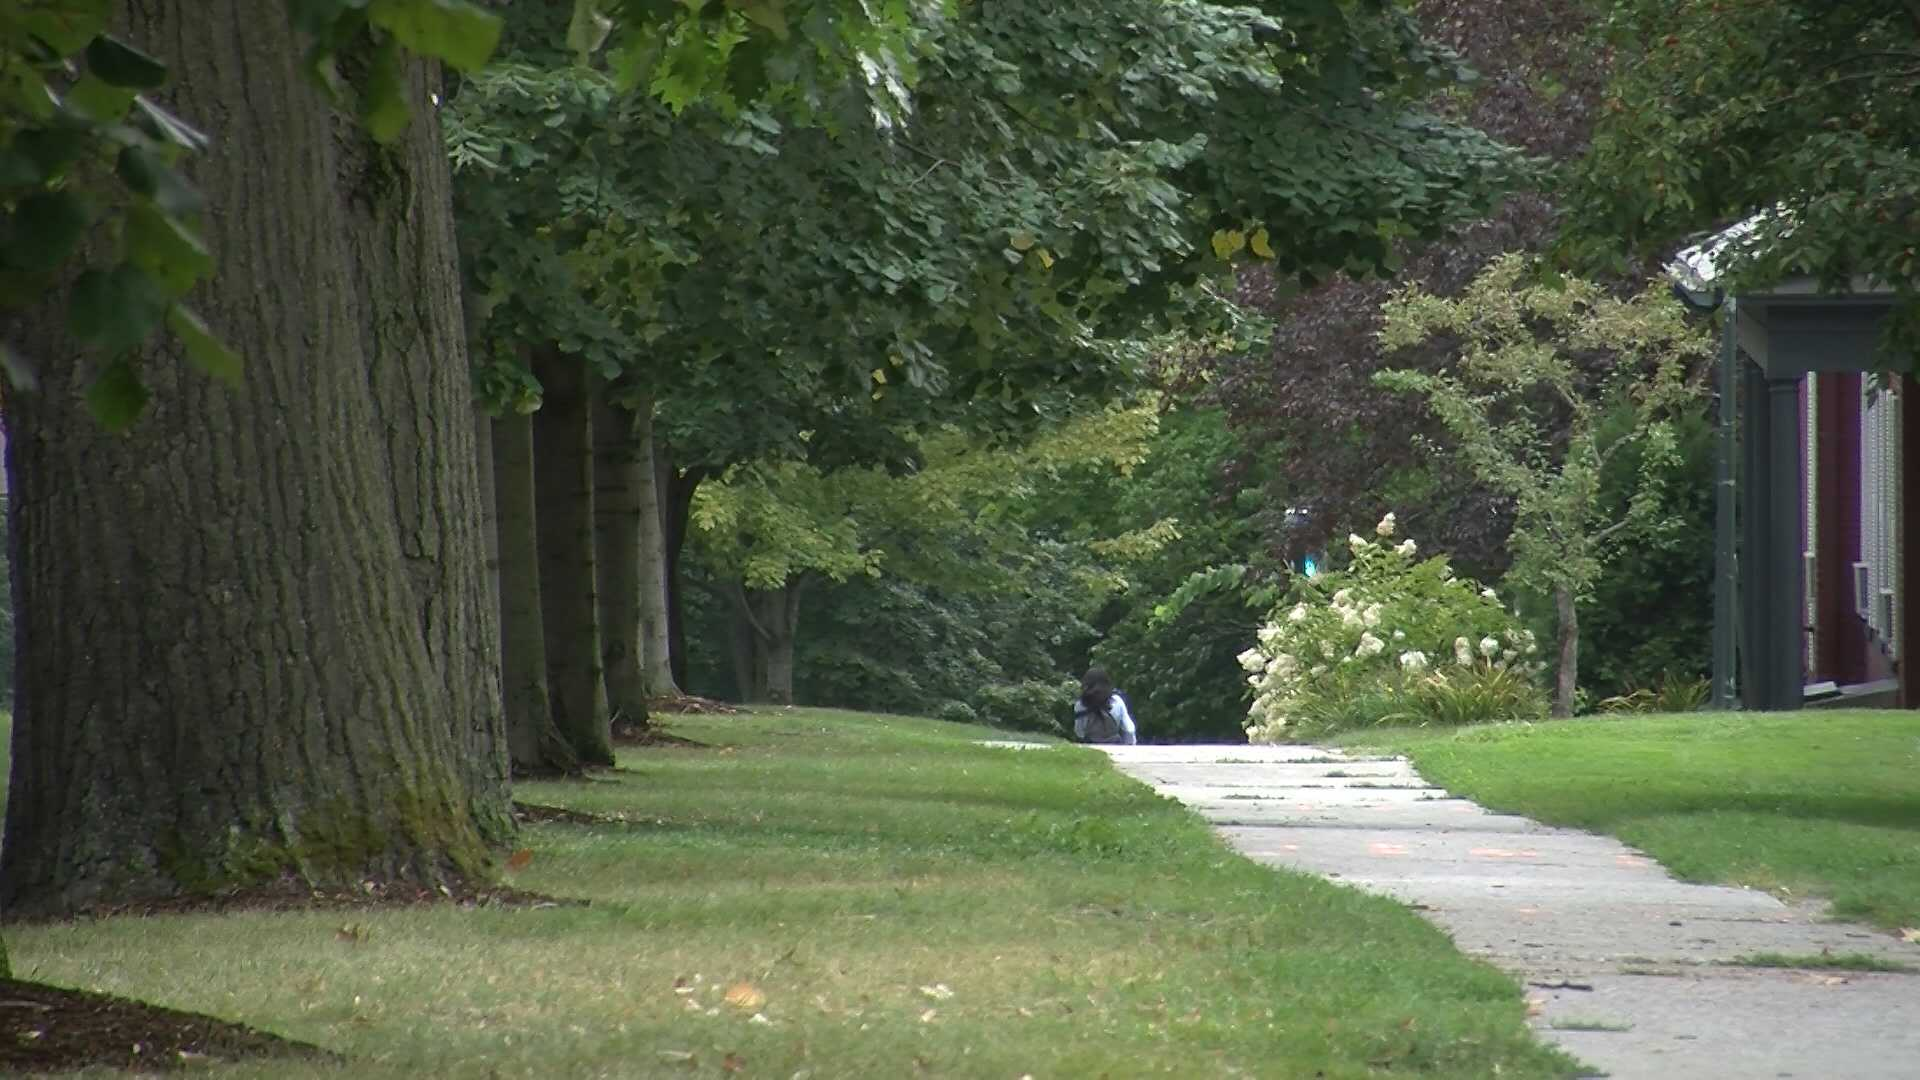 082012 Woman sexually assaulted in Burlington